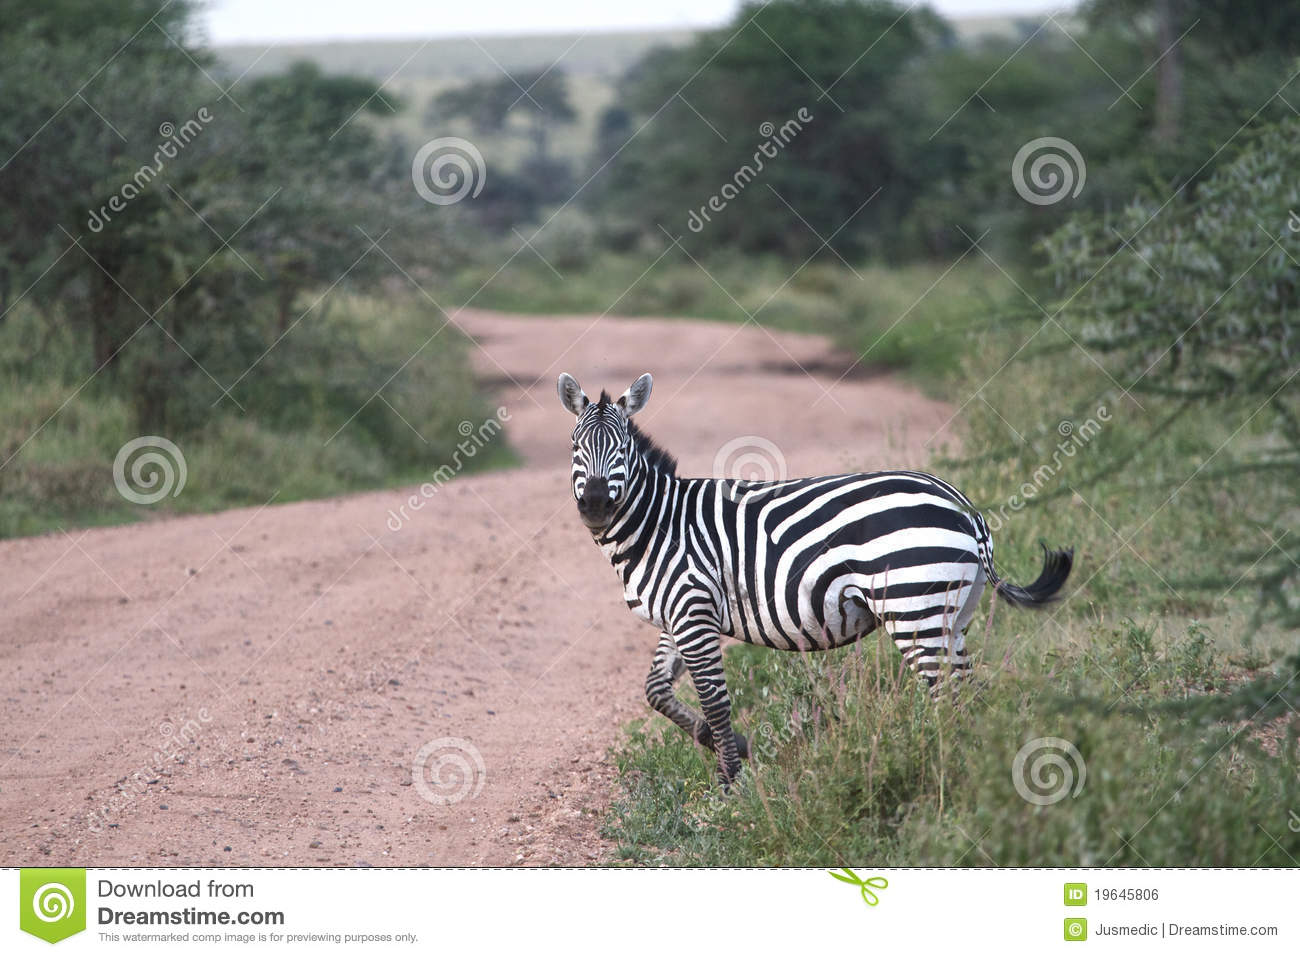 Animated zebra crossing